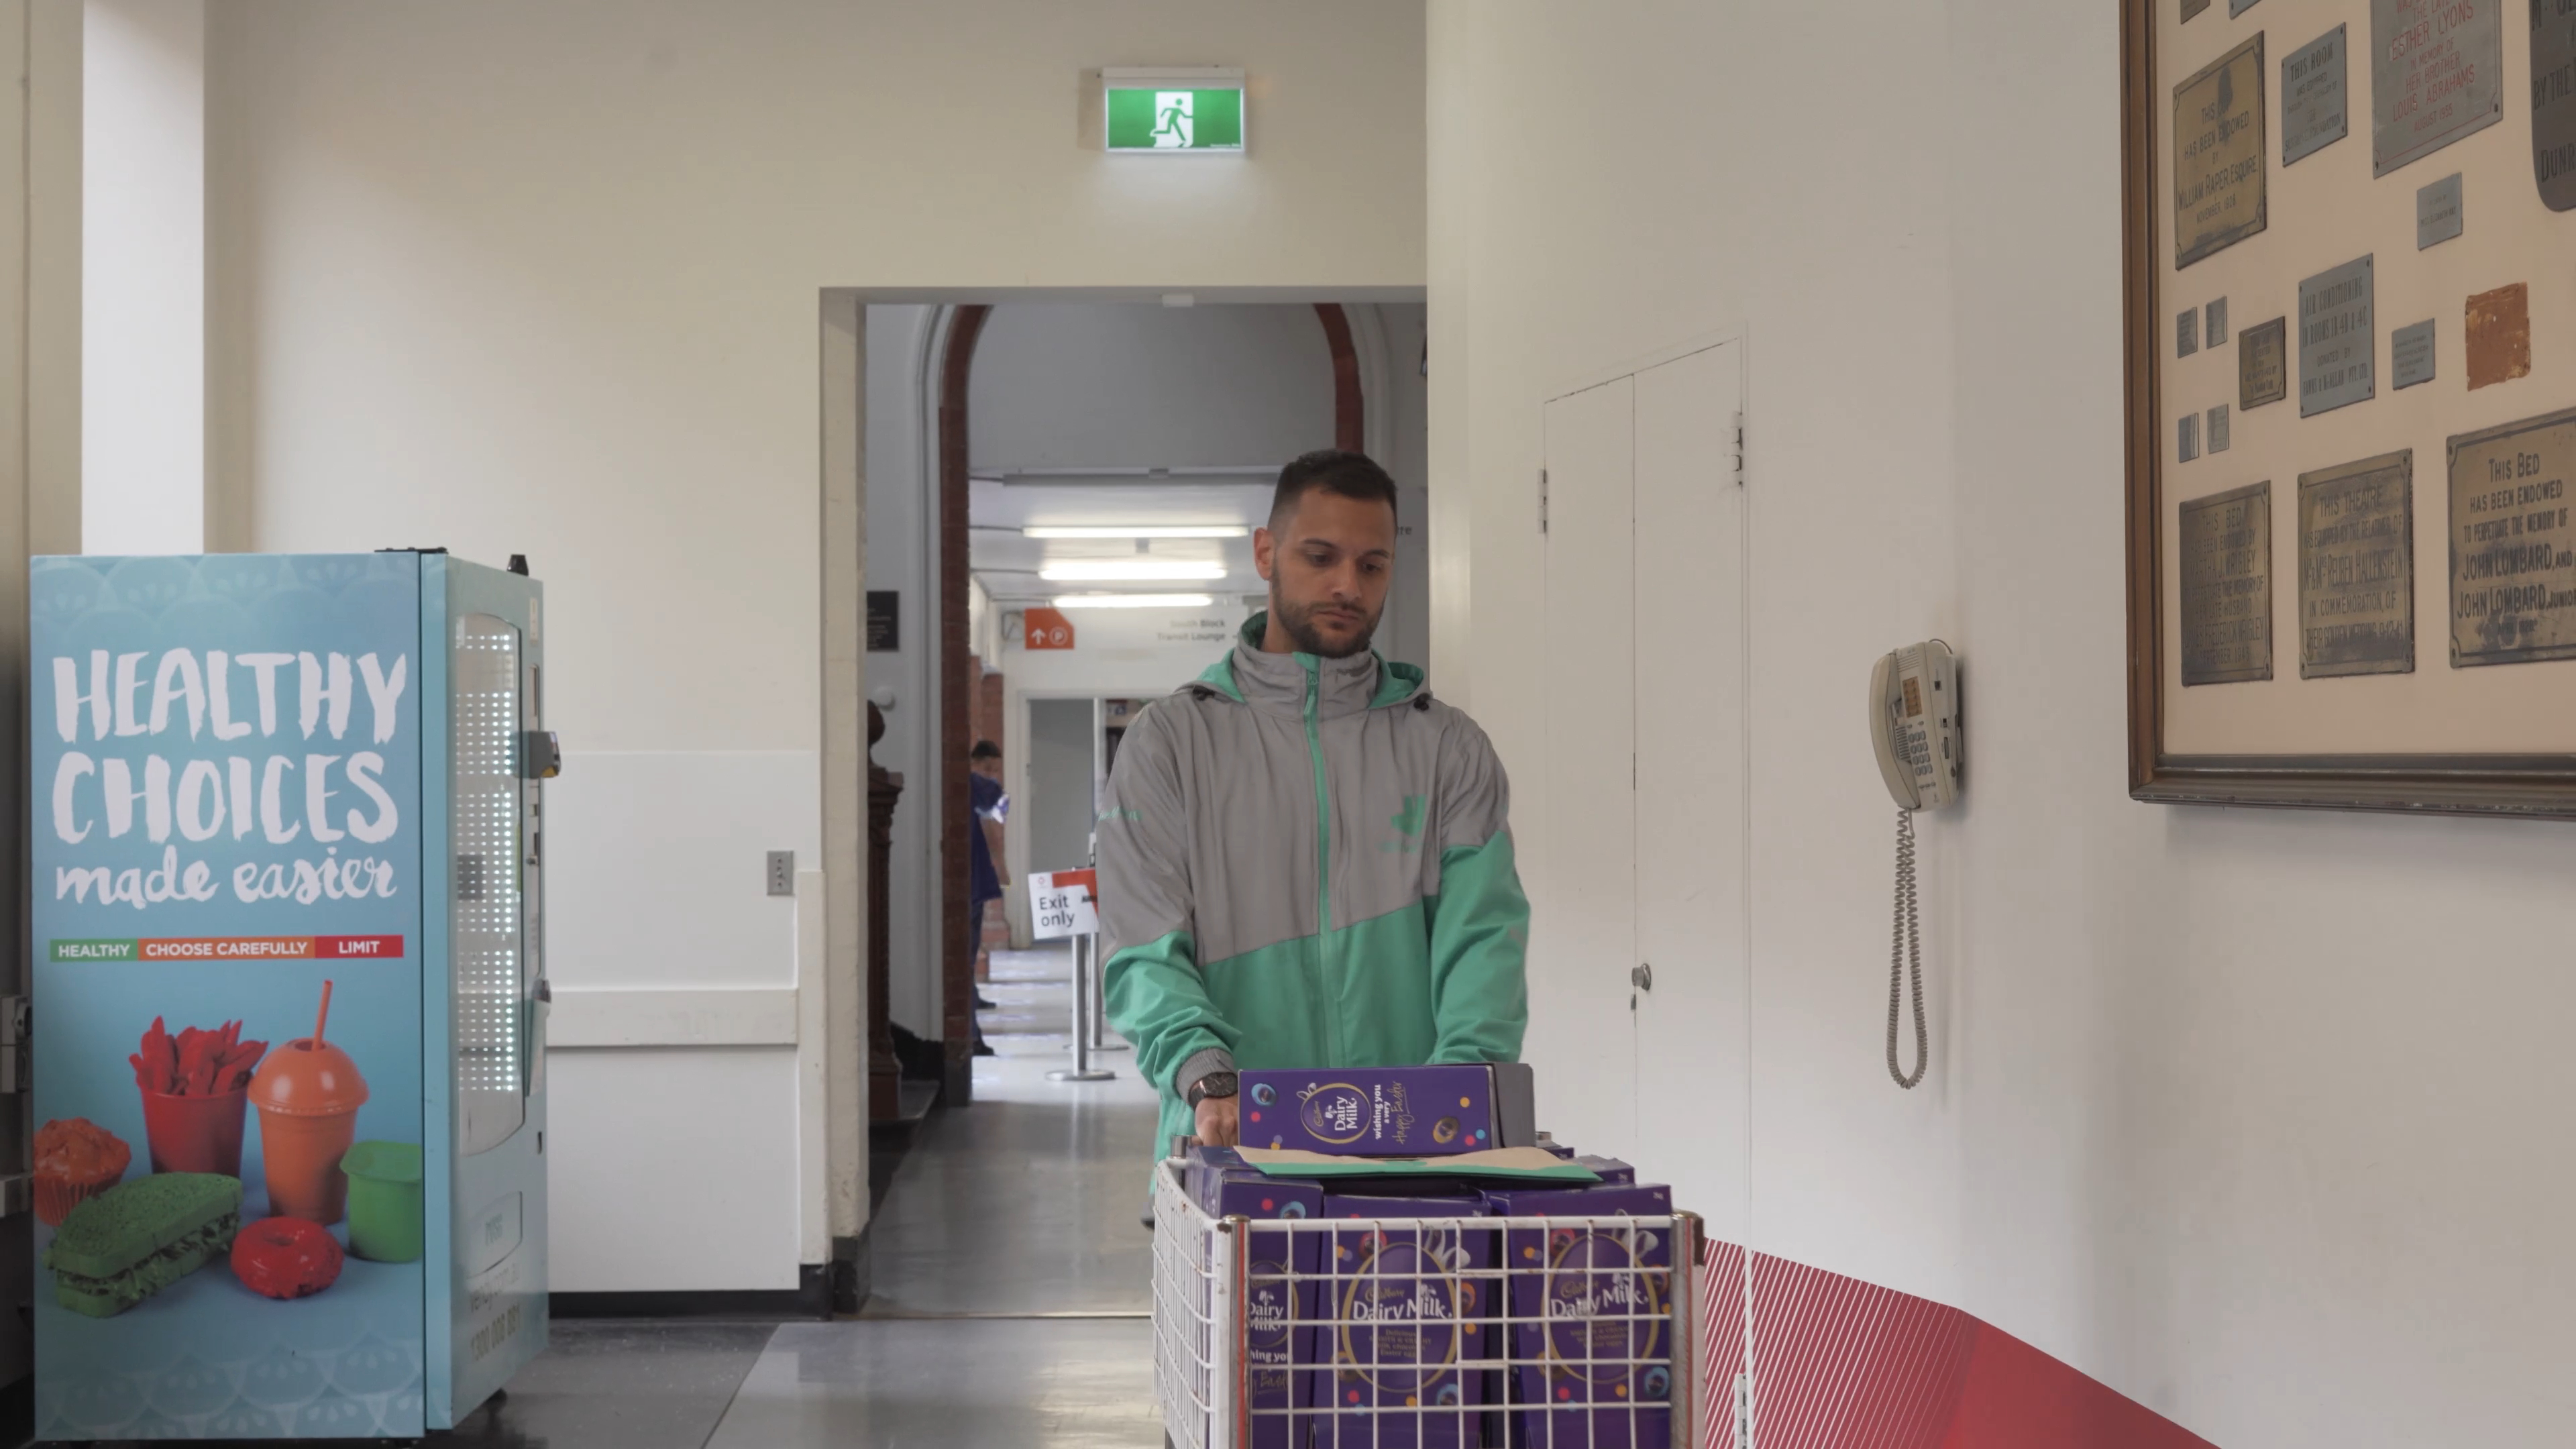 Cadbury and Deliveroo team up to deliver chocolate eggs to hospitals